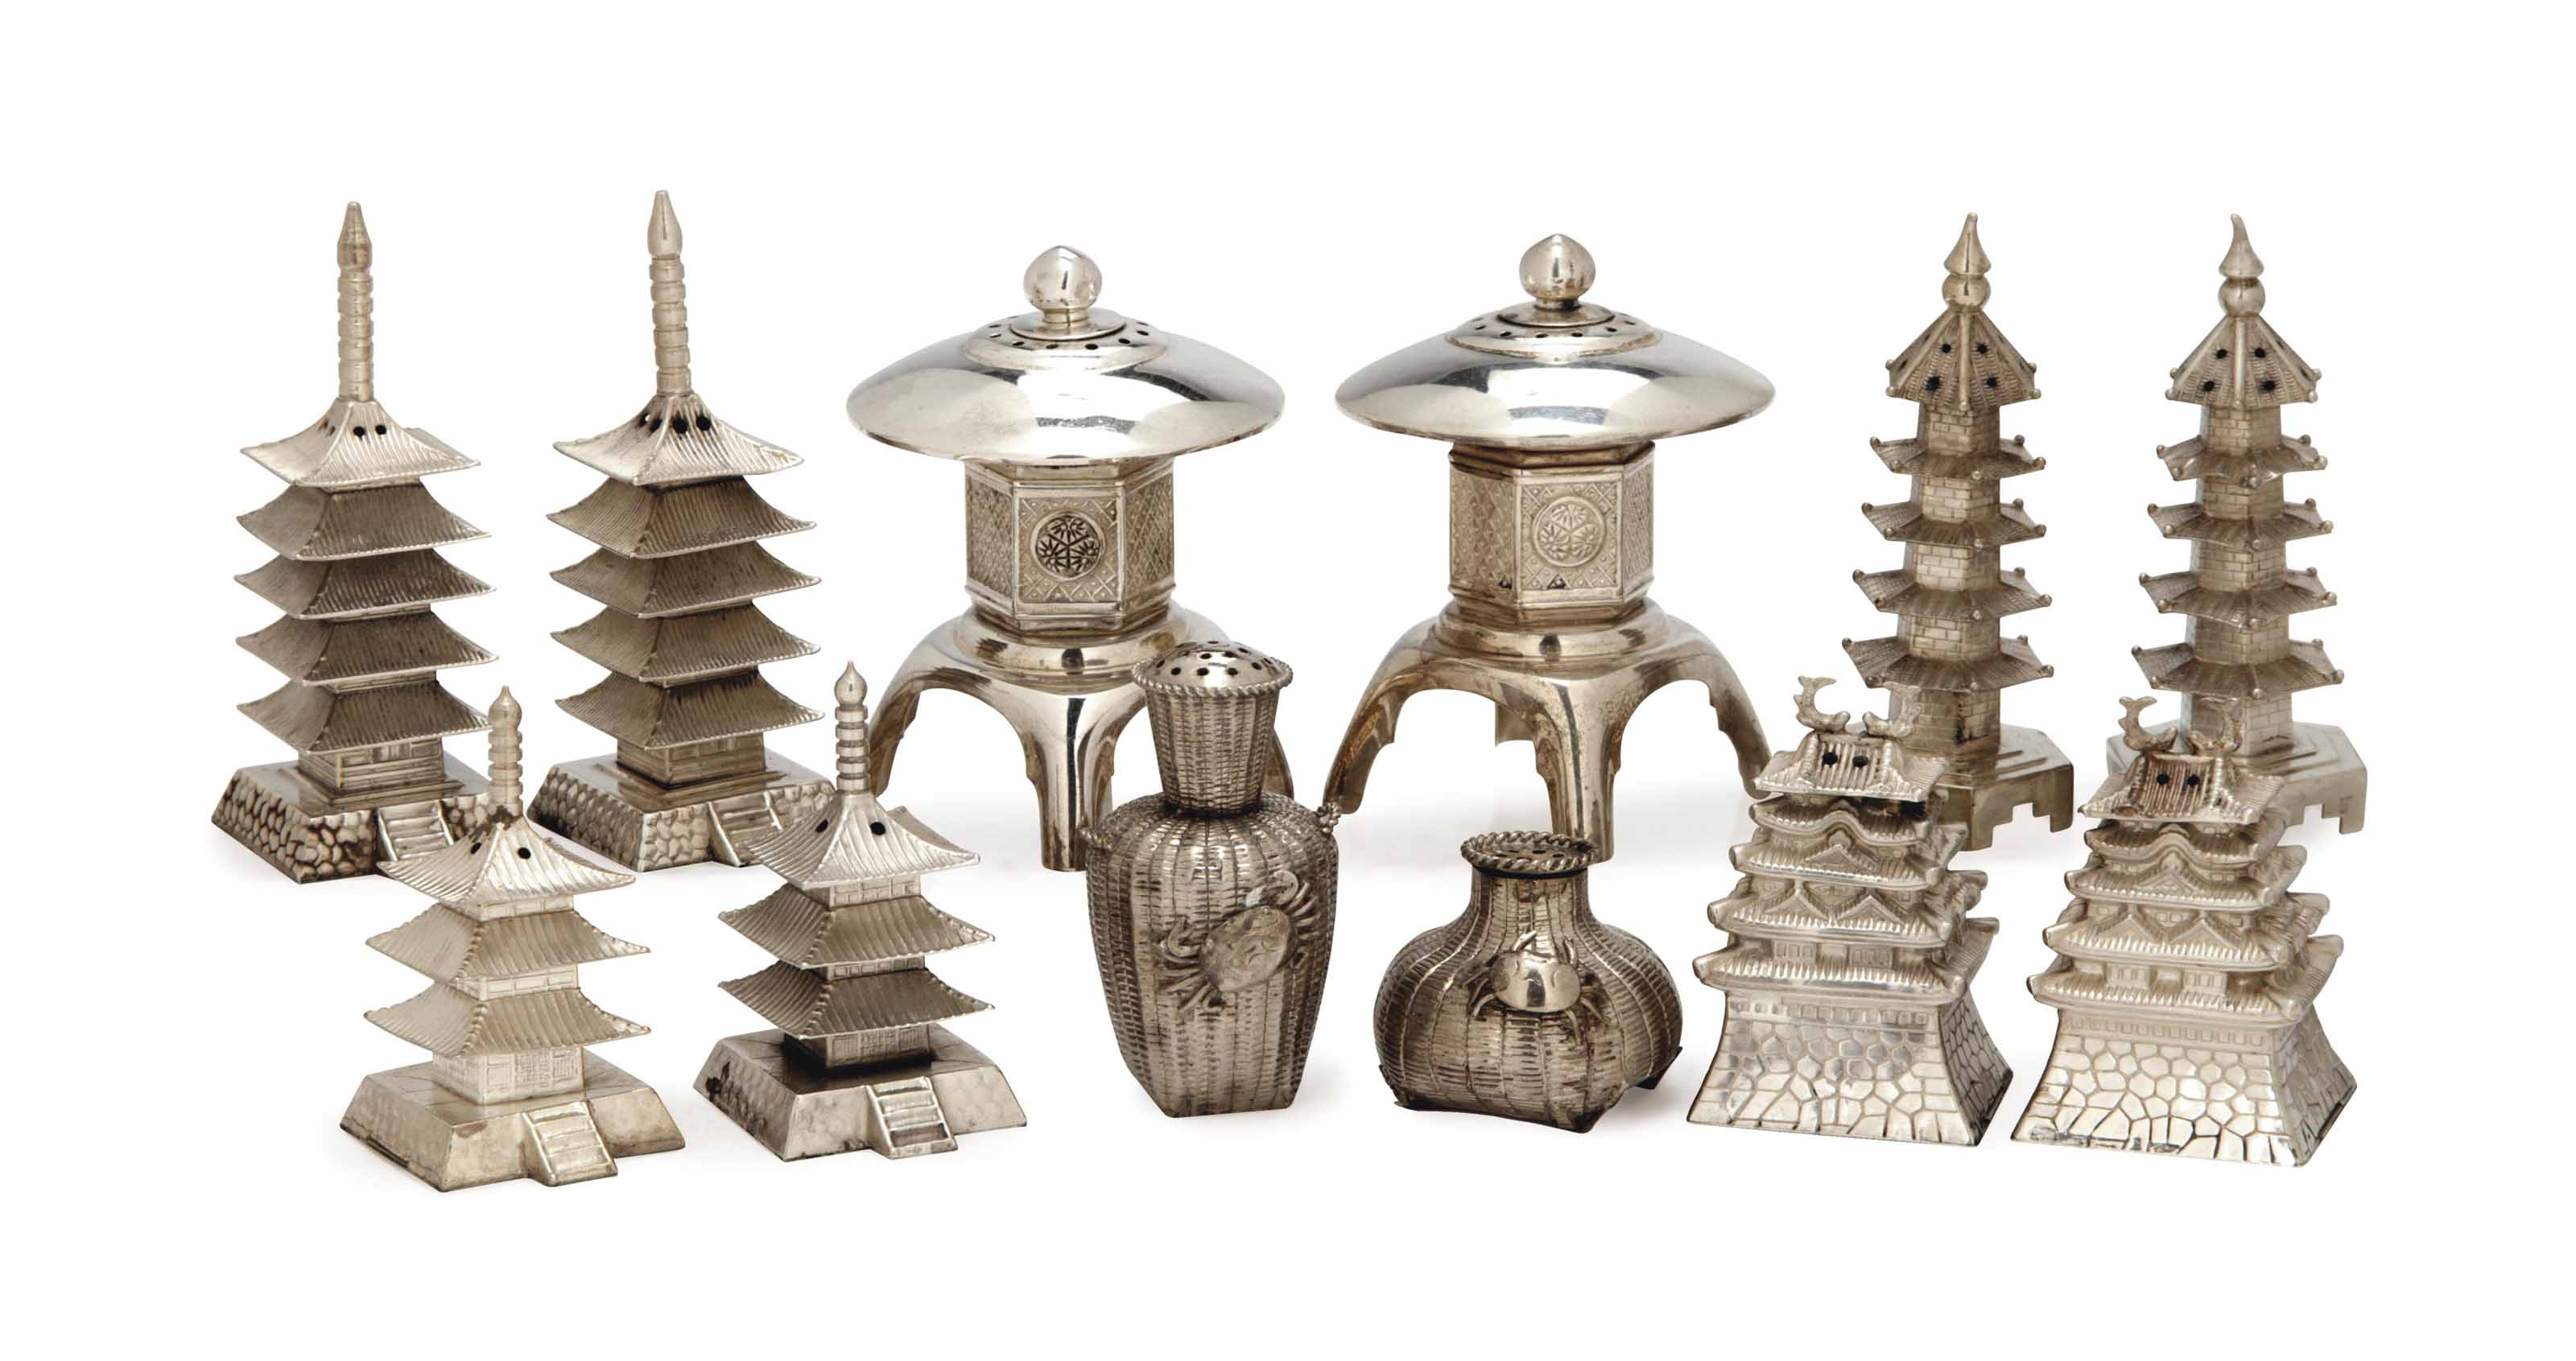 FOUR PAIRS OF SILVER CASTERS I